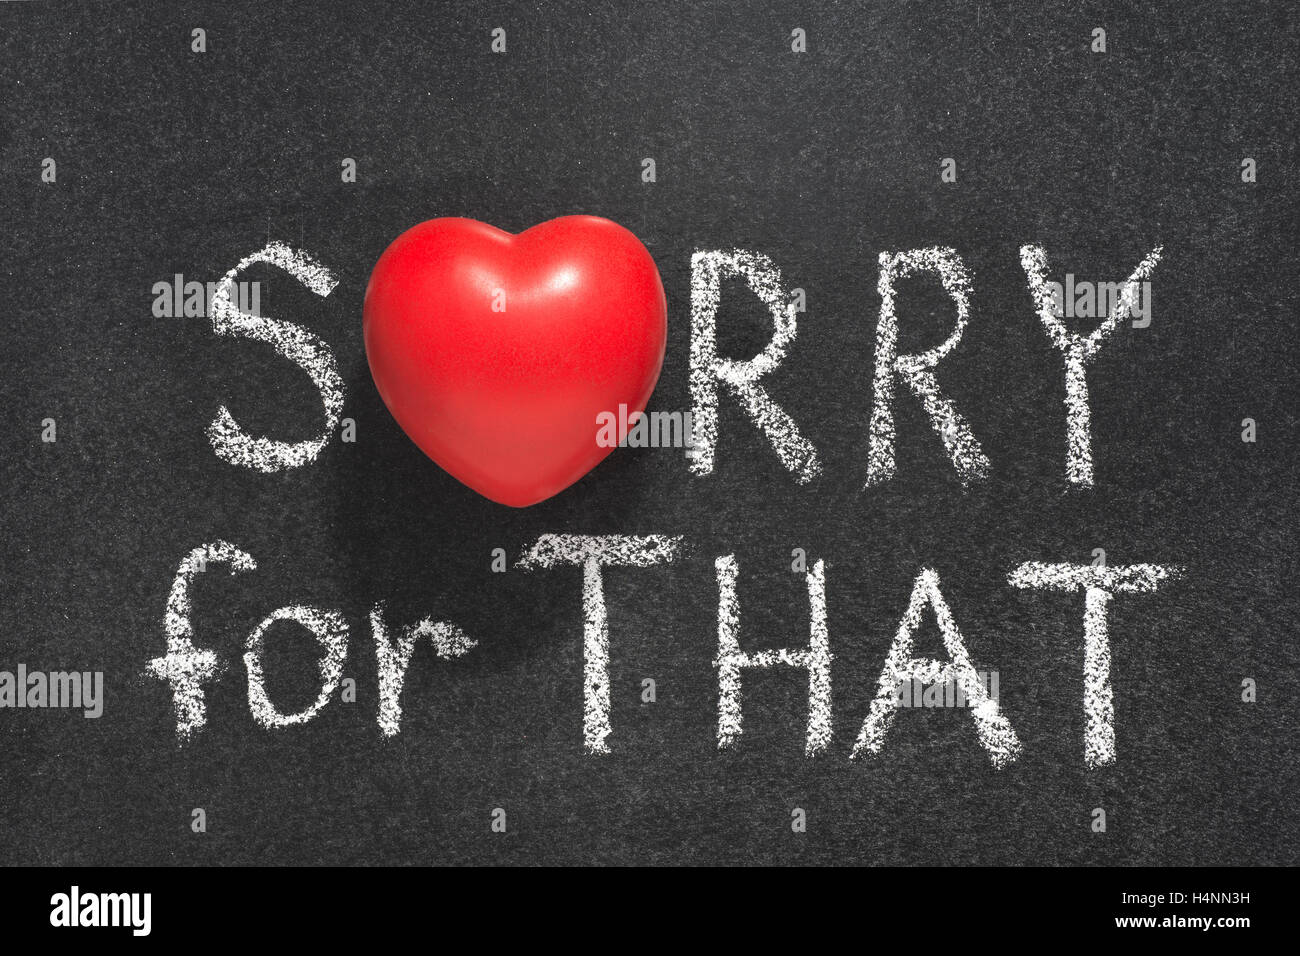 Sorry For That Phrase Handwritten On Blackboard With Heart Symbol